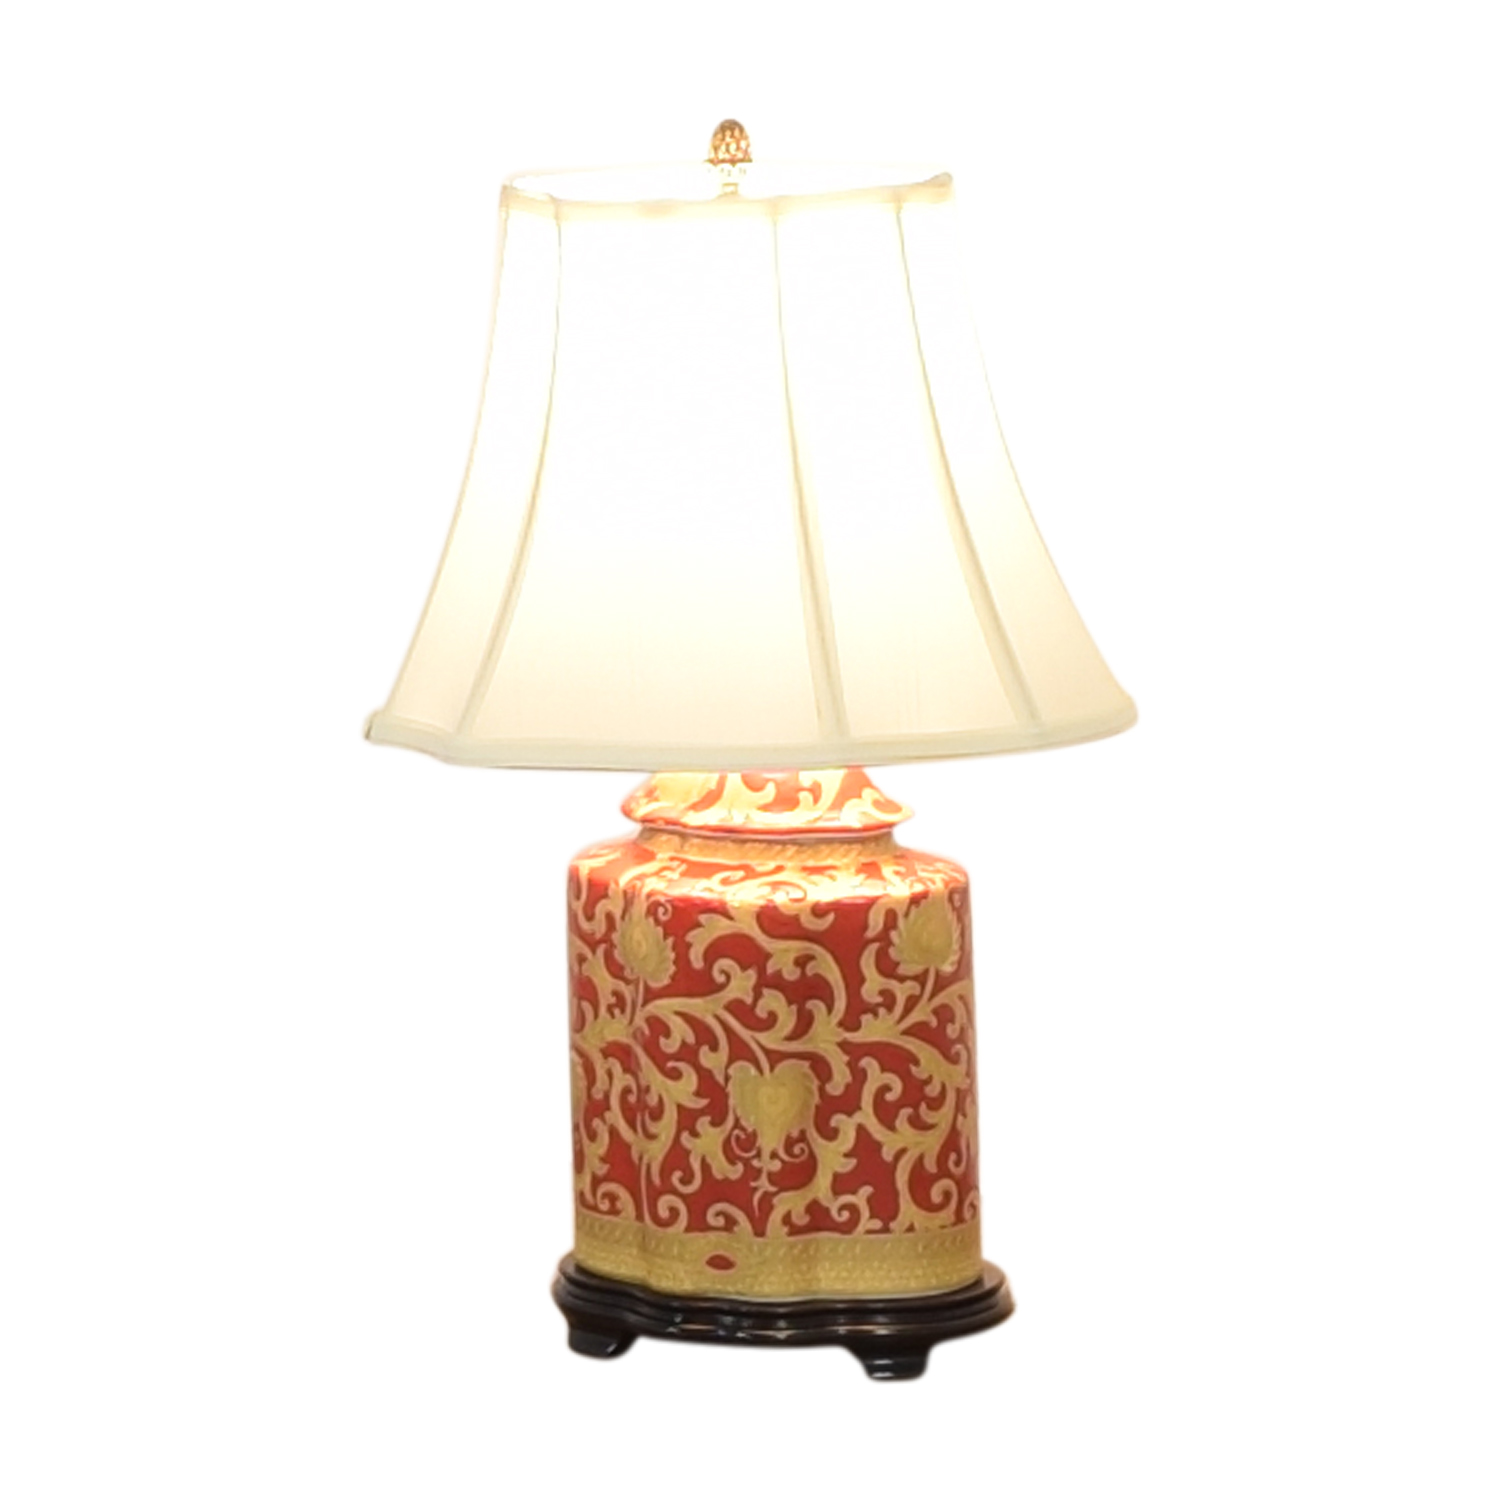 Porcelain Hand Painted Scalloped Lamp nyc